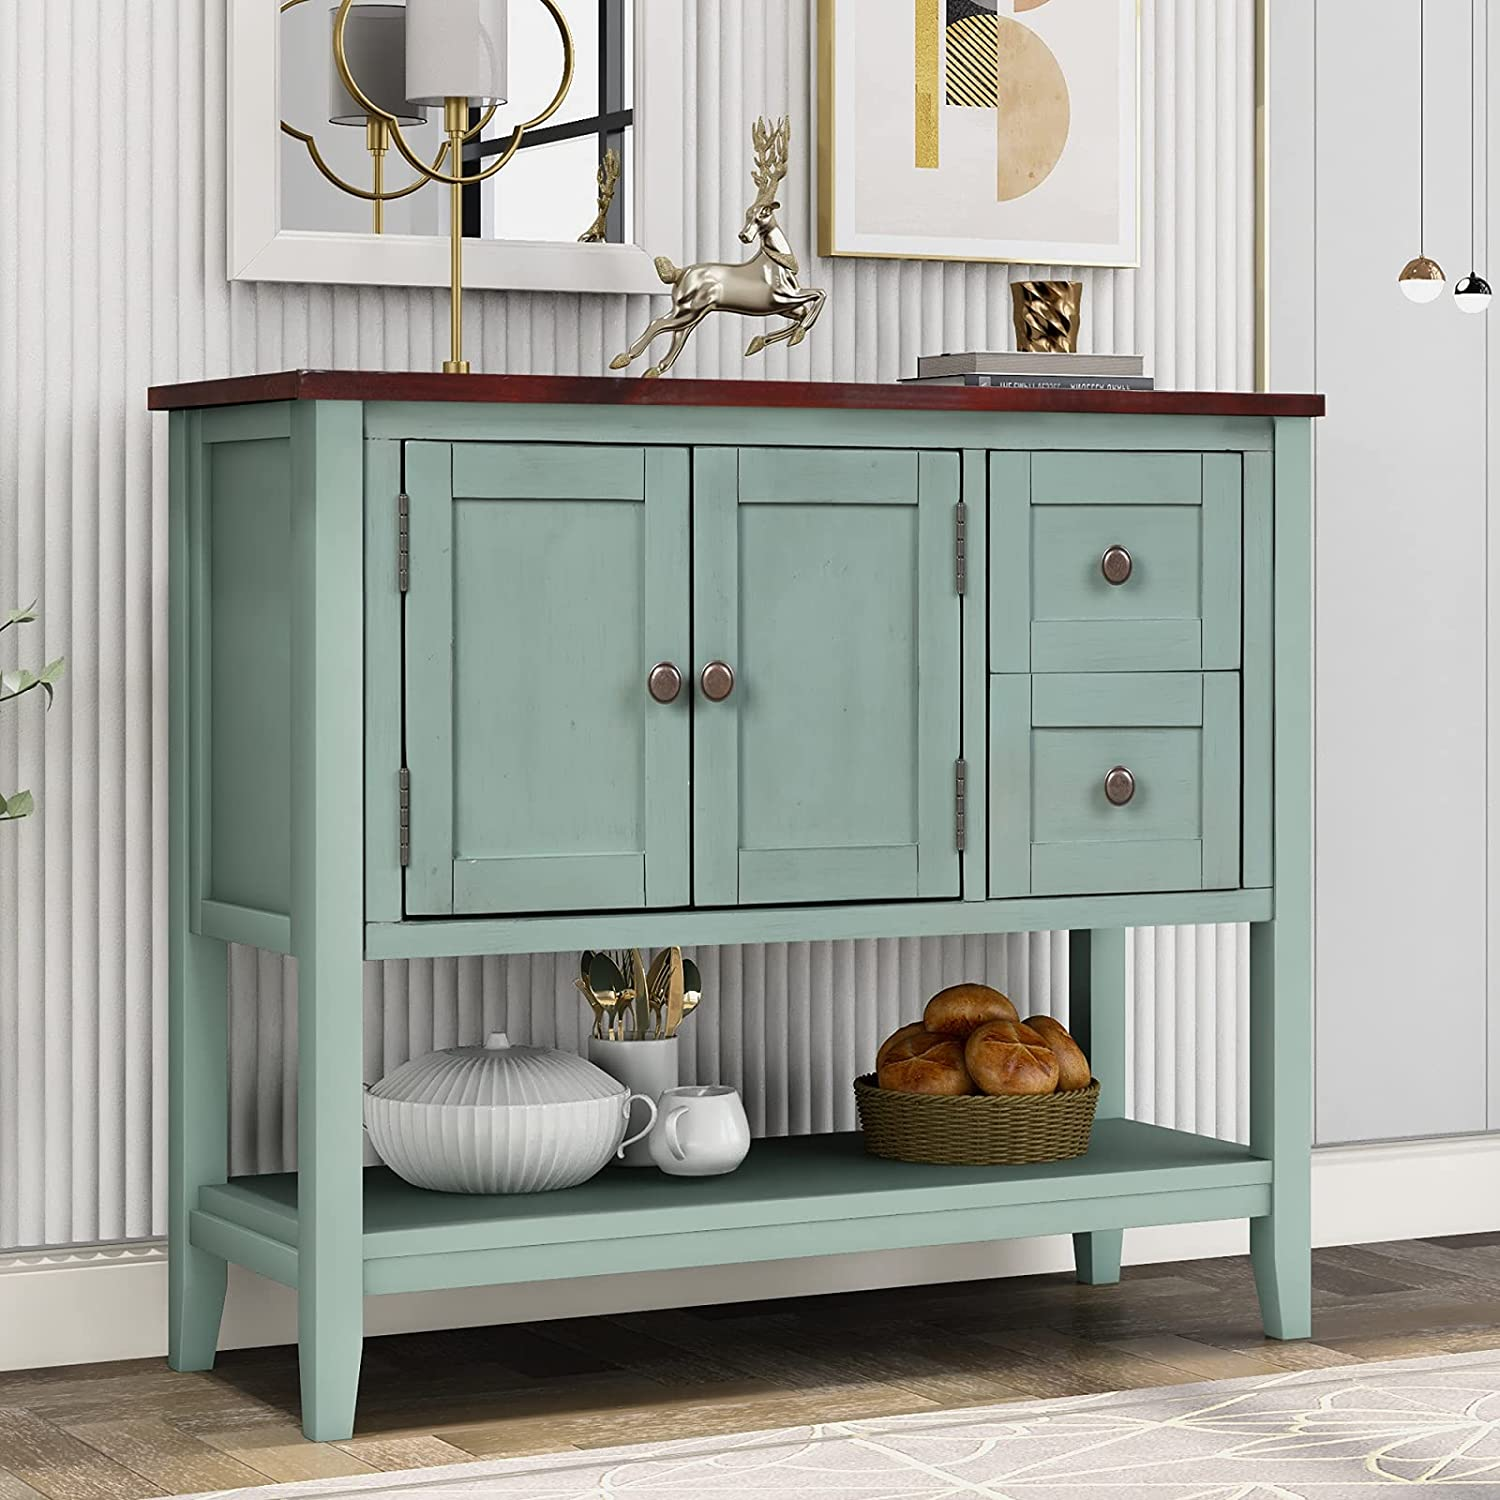 Narrow All items in the store Console Table with Max 66% OFF Farmhouse Buffet Drawers Cabinet